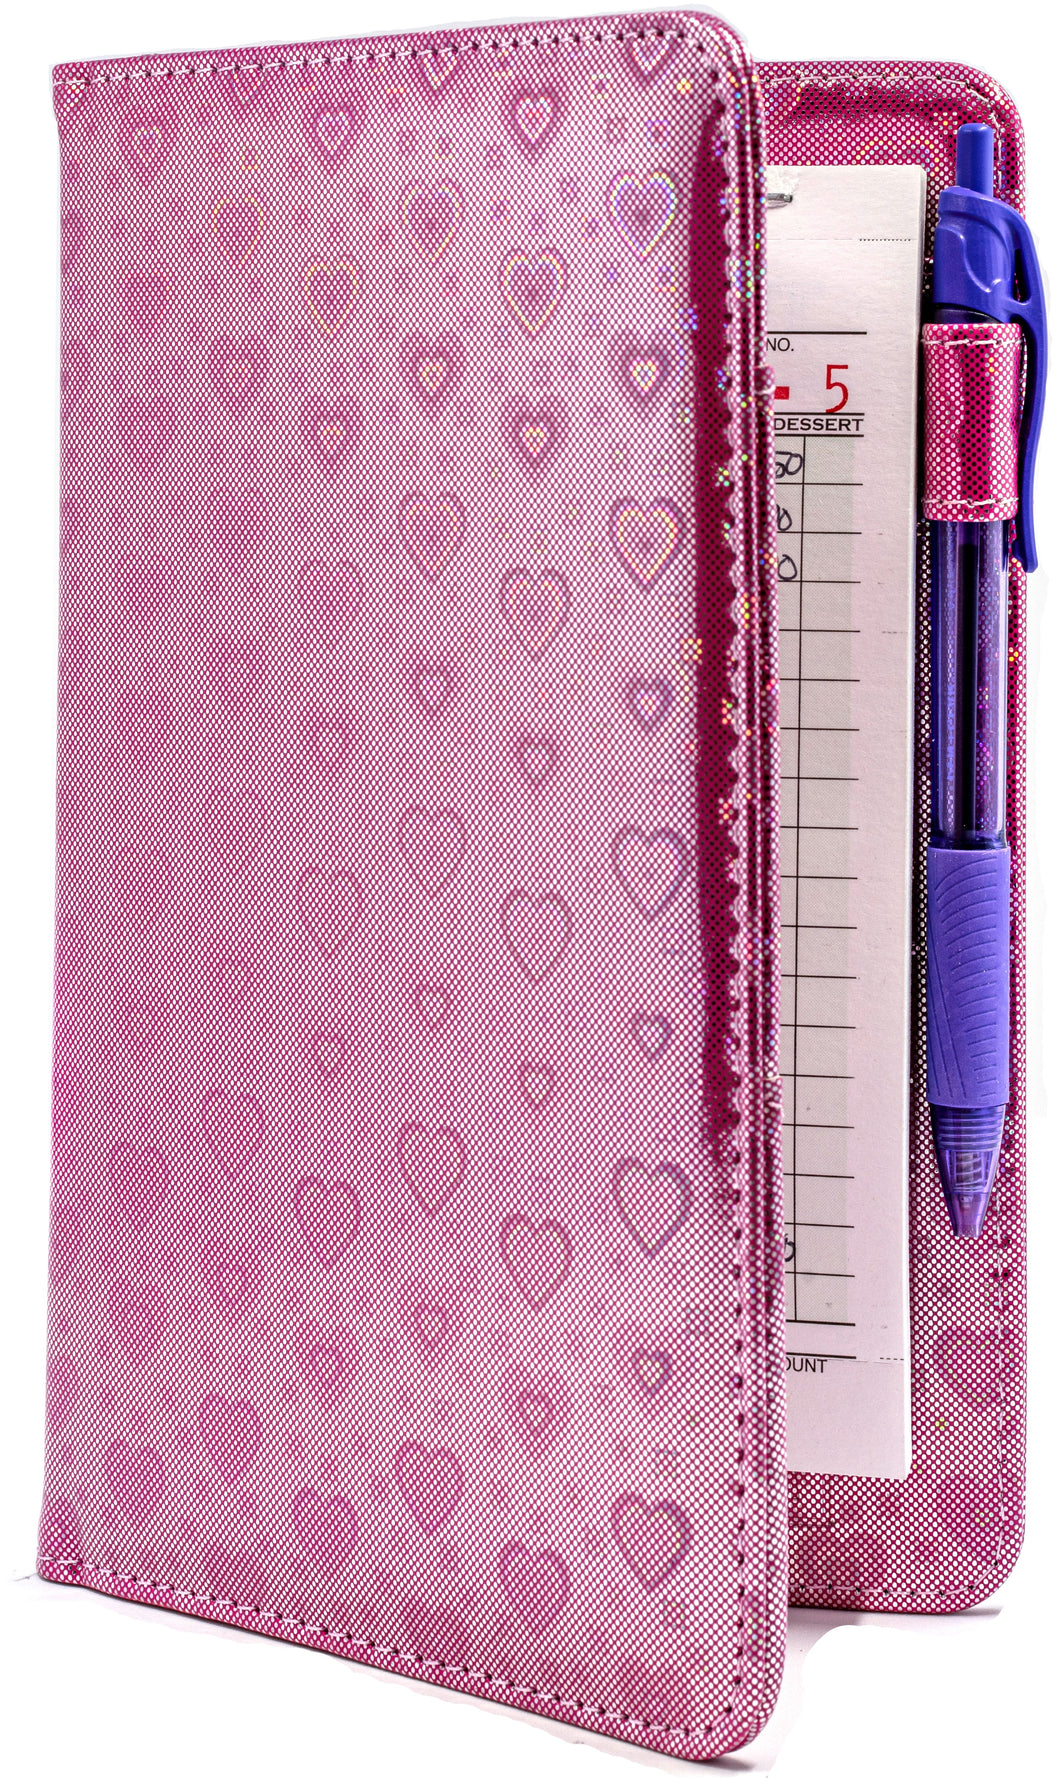 Pink Hearts Server Book from ServerBooks.com